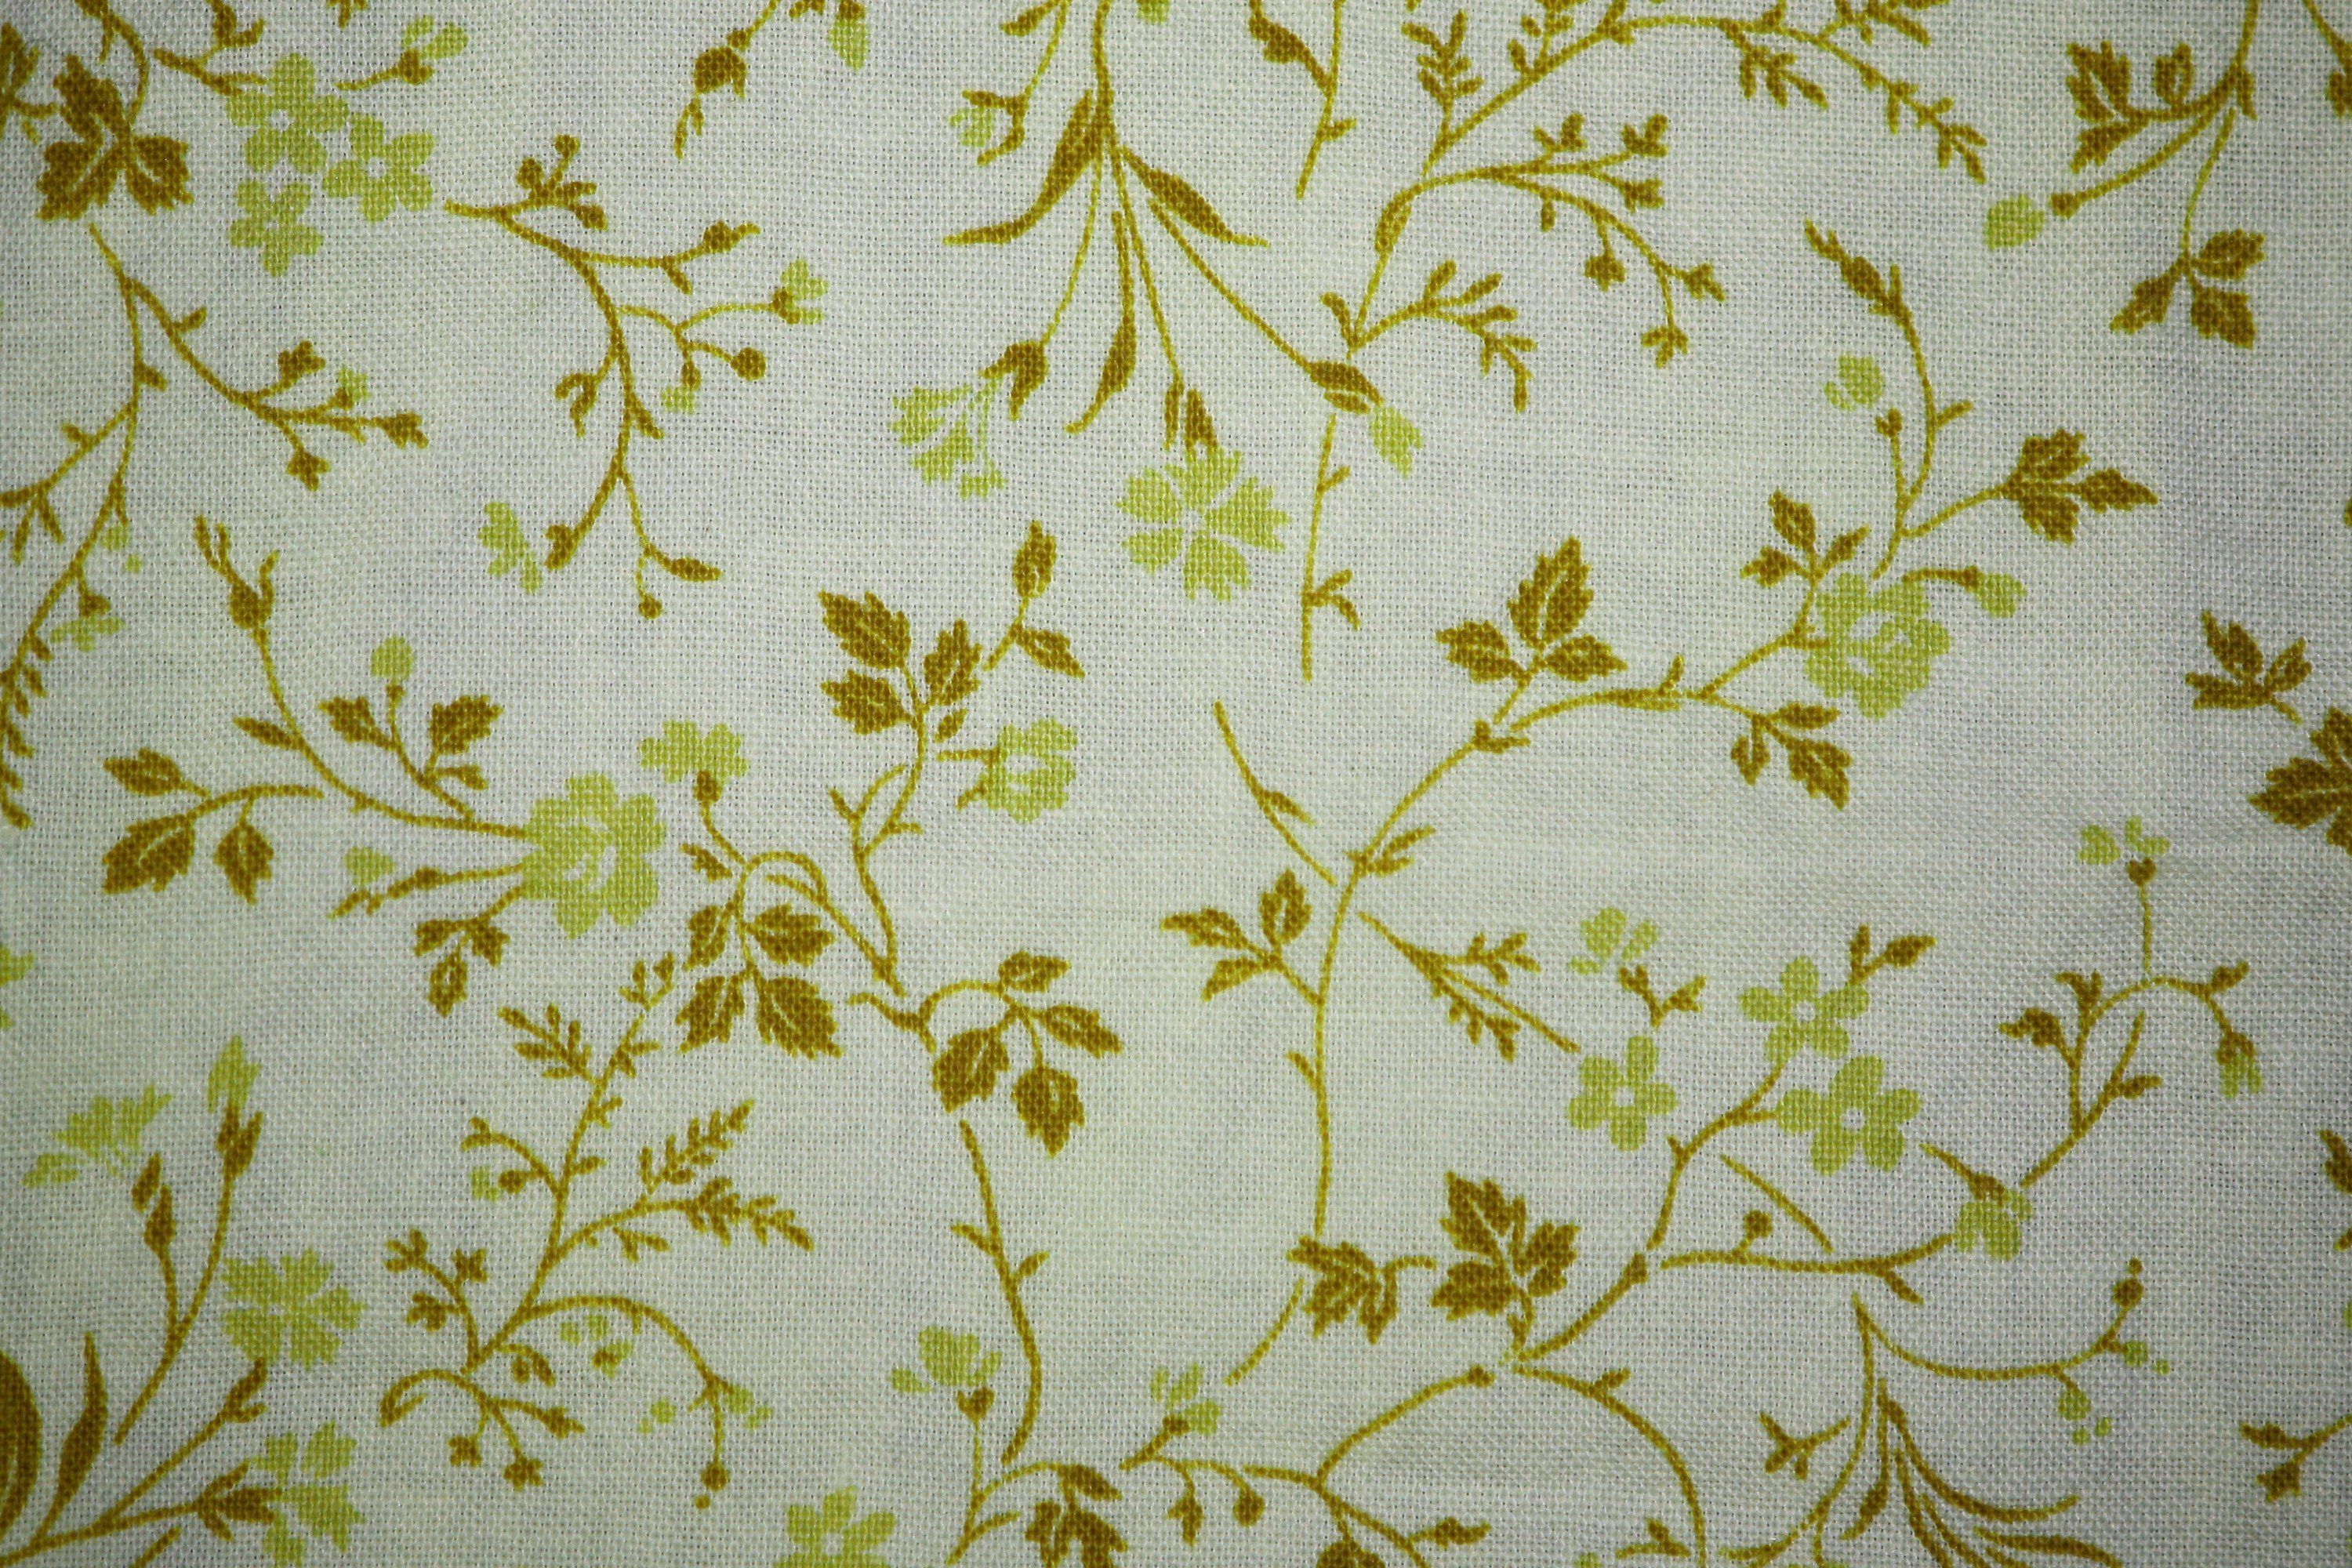 Gold On White Floral Print Fabric Texture Picture Free